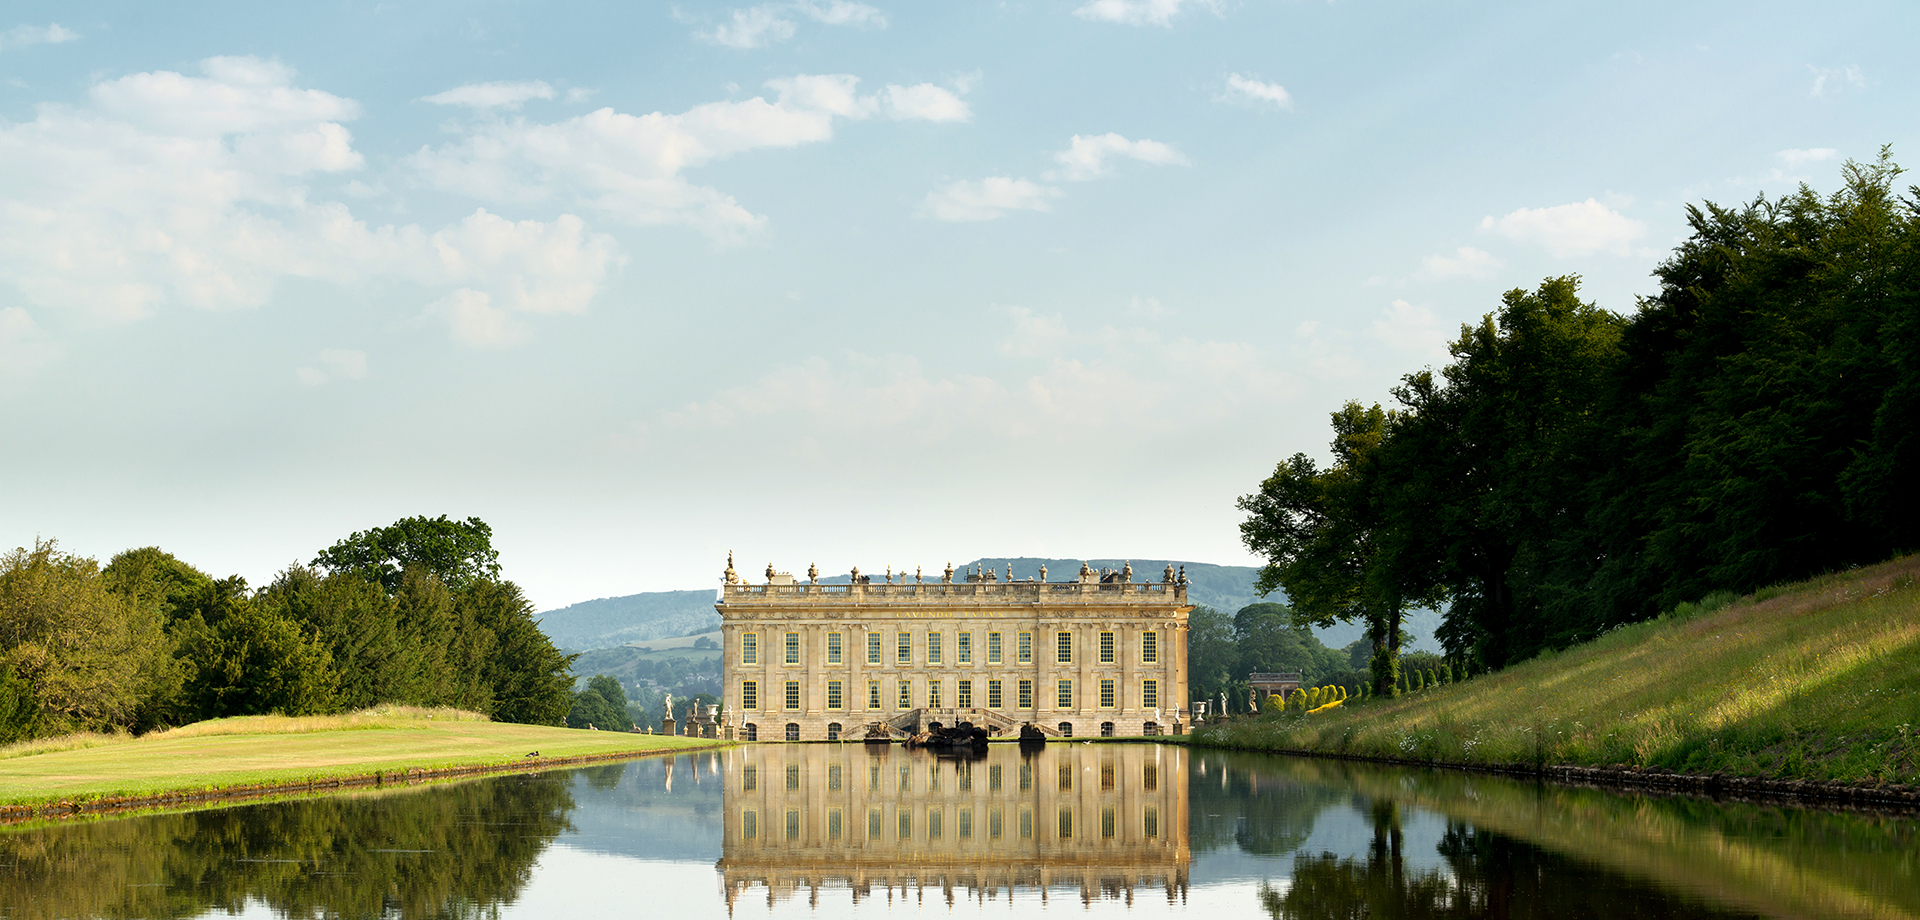 QUEST begins in Chatsworth's Inner Court